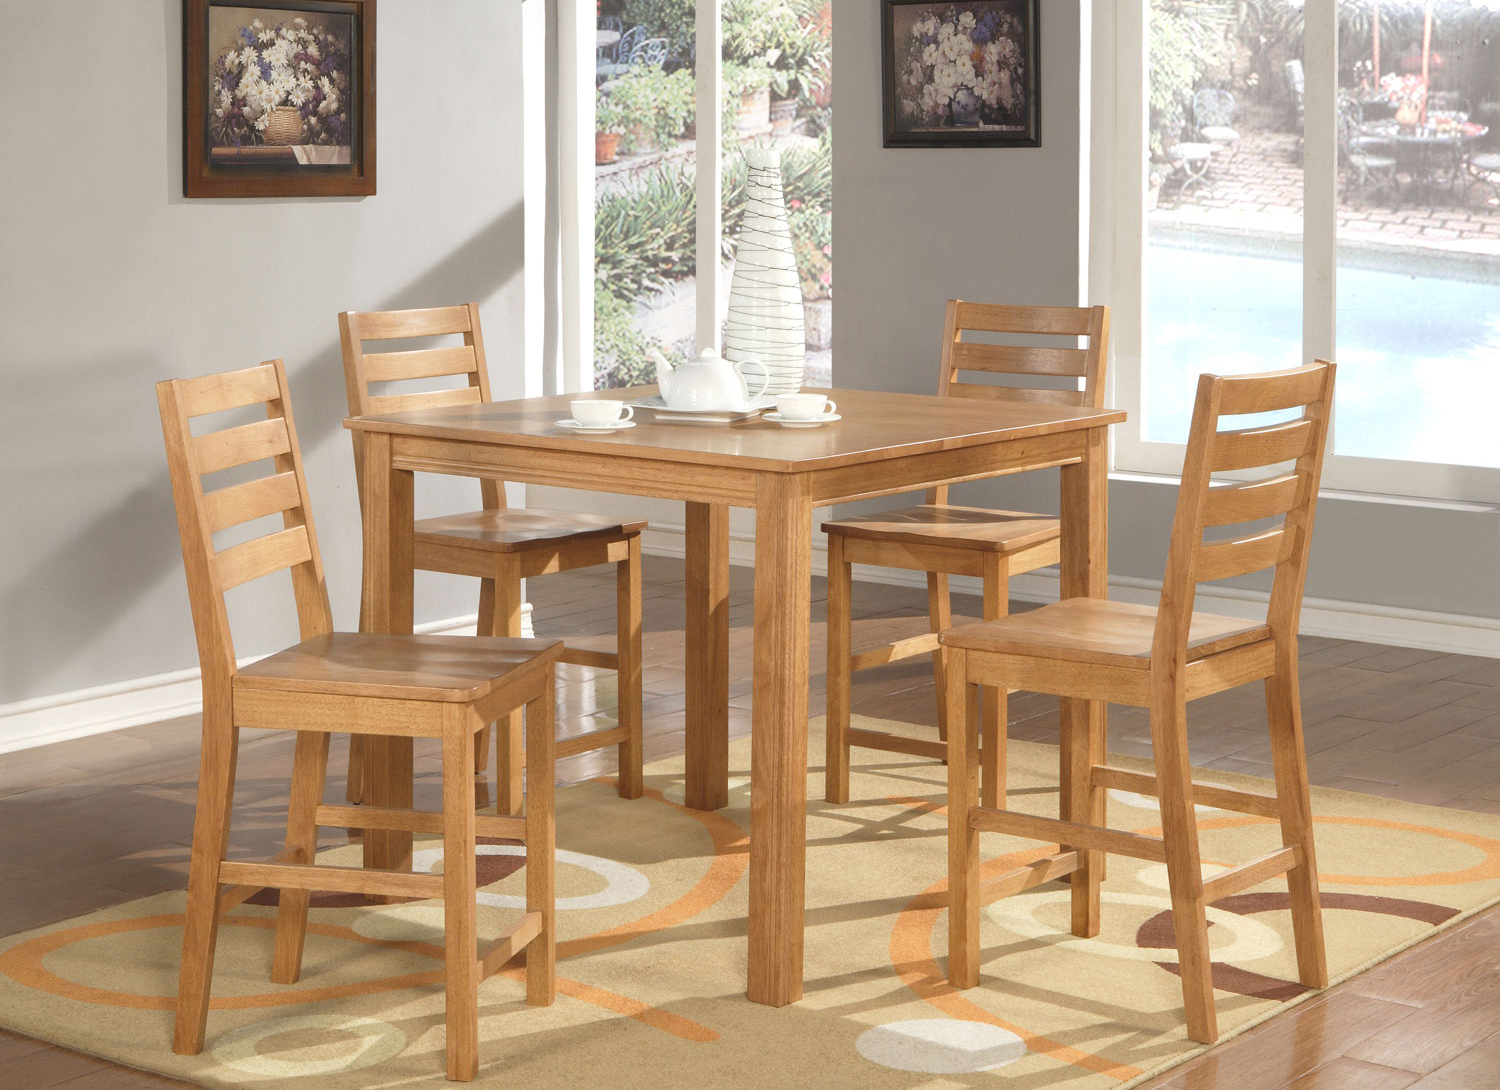 Inspiration about 5 Pc Square Counter Height Dining Table 4 Stools In Oak Finish Within Most Popular John 4 Piece Dining Sets (#10 of 20)